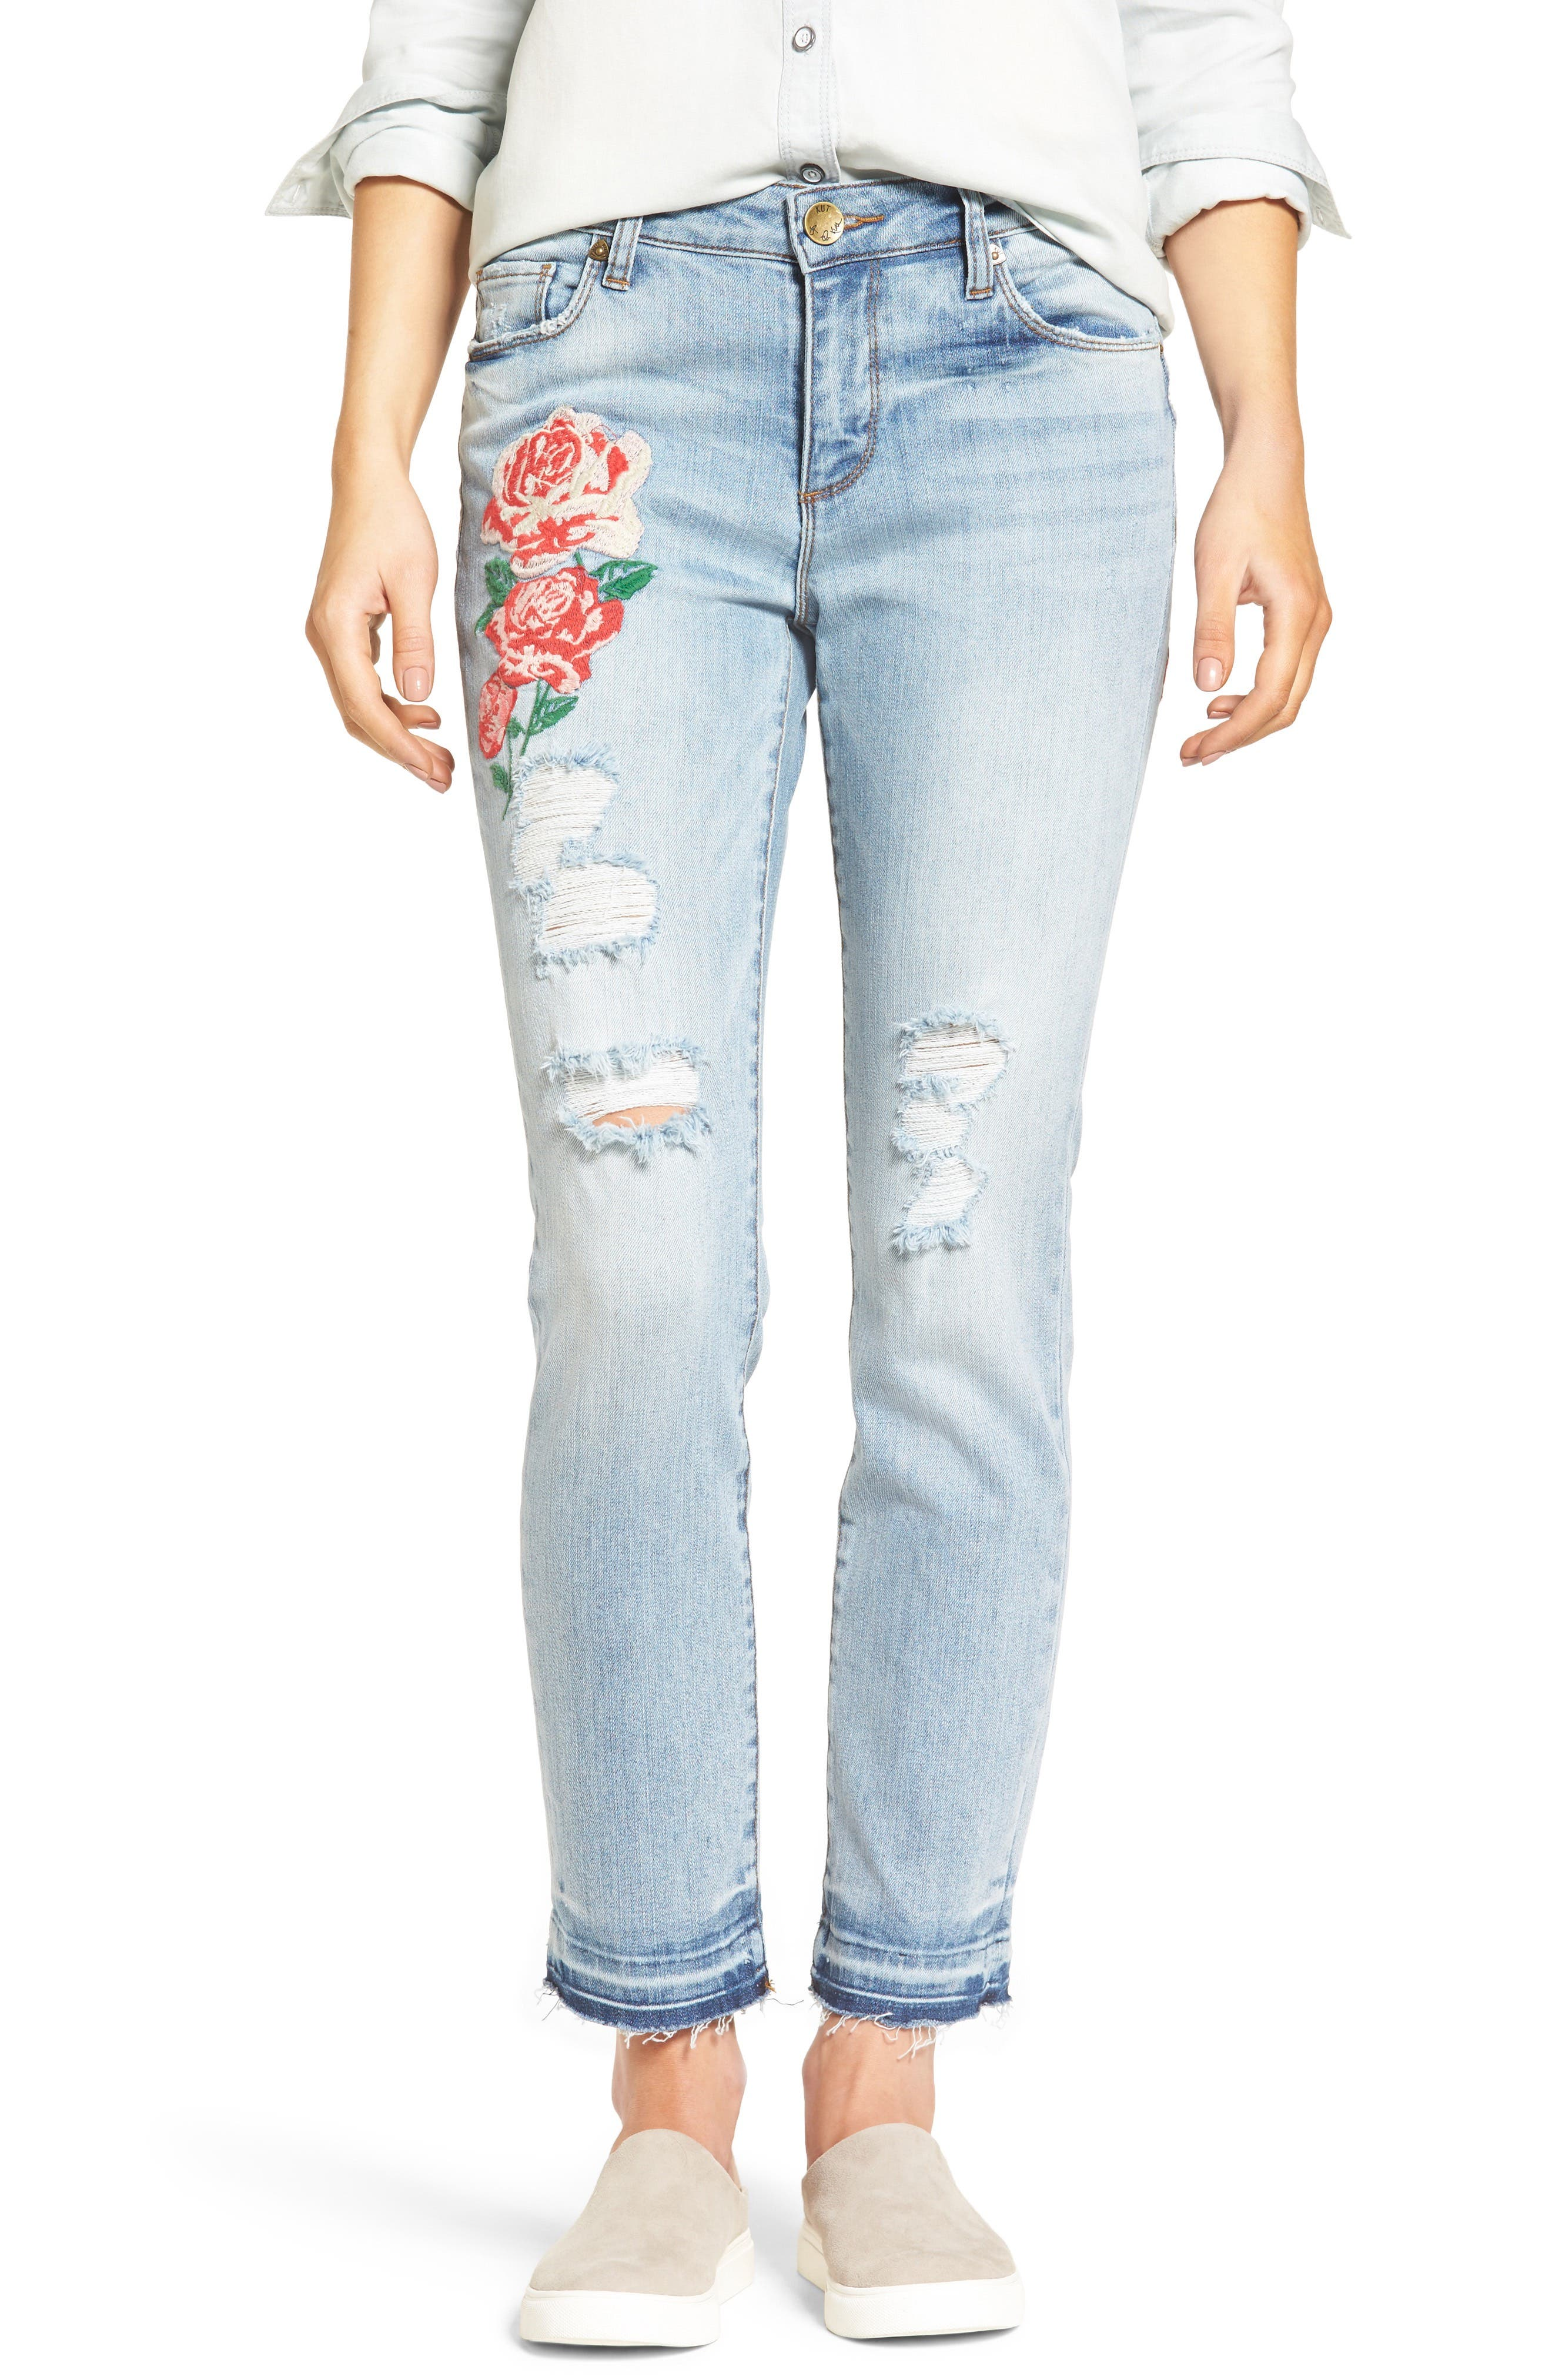 Alternate Image 1 Selected - KUT from the Kloth Embroidered Straight Leg Jeans (Excellency) (Regular & Petite)